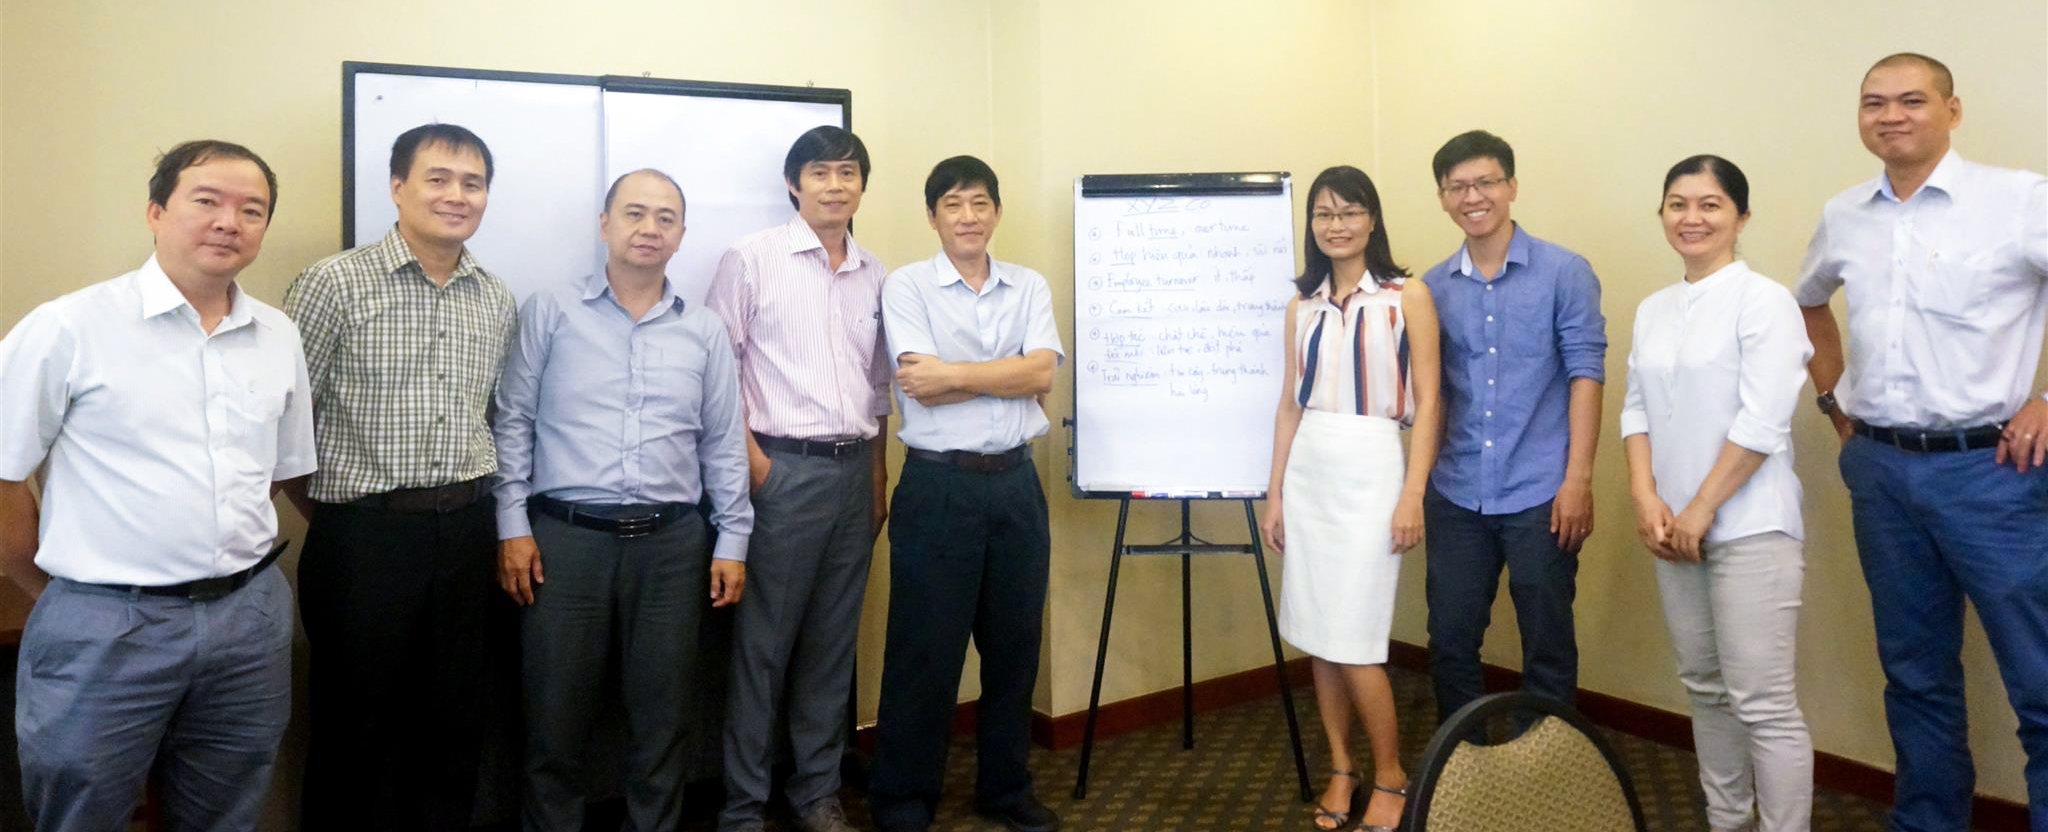 """LEADING AT THE SPEED OF TRUST"" TRAINING PROGRAM AT SONY ELECTRONICS VIETNAM"